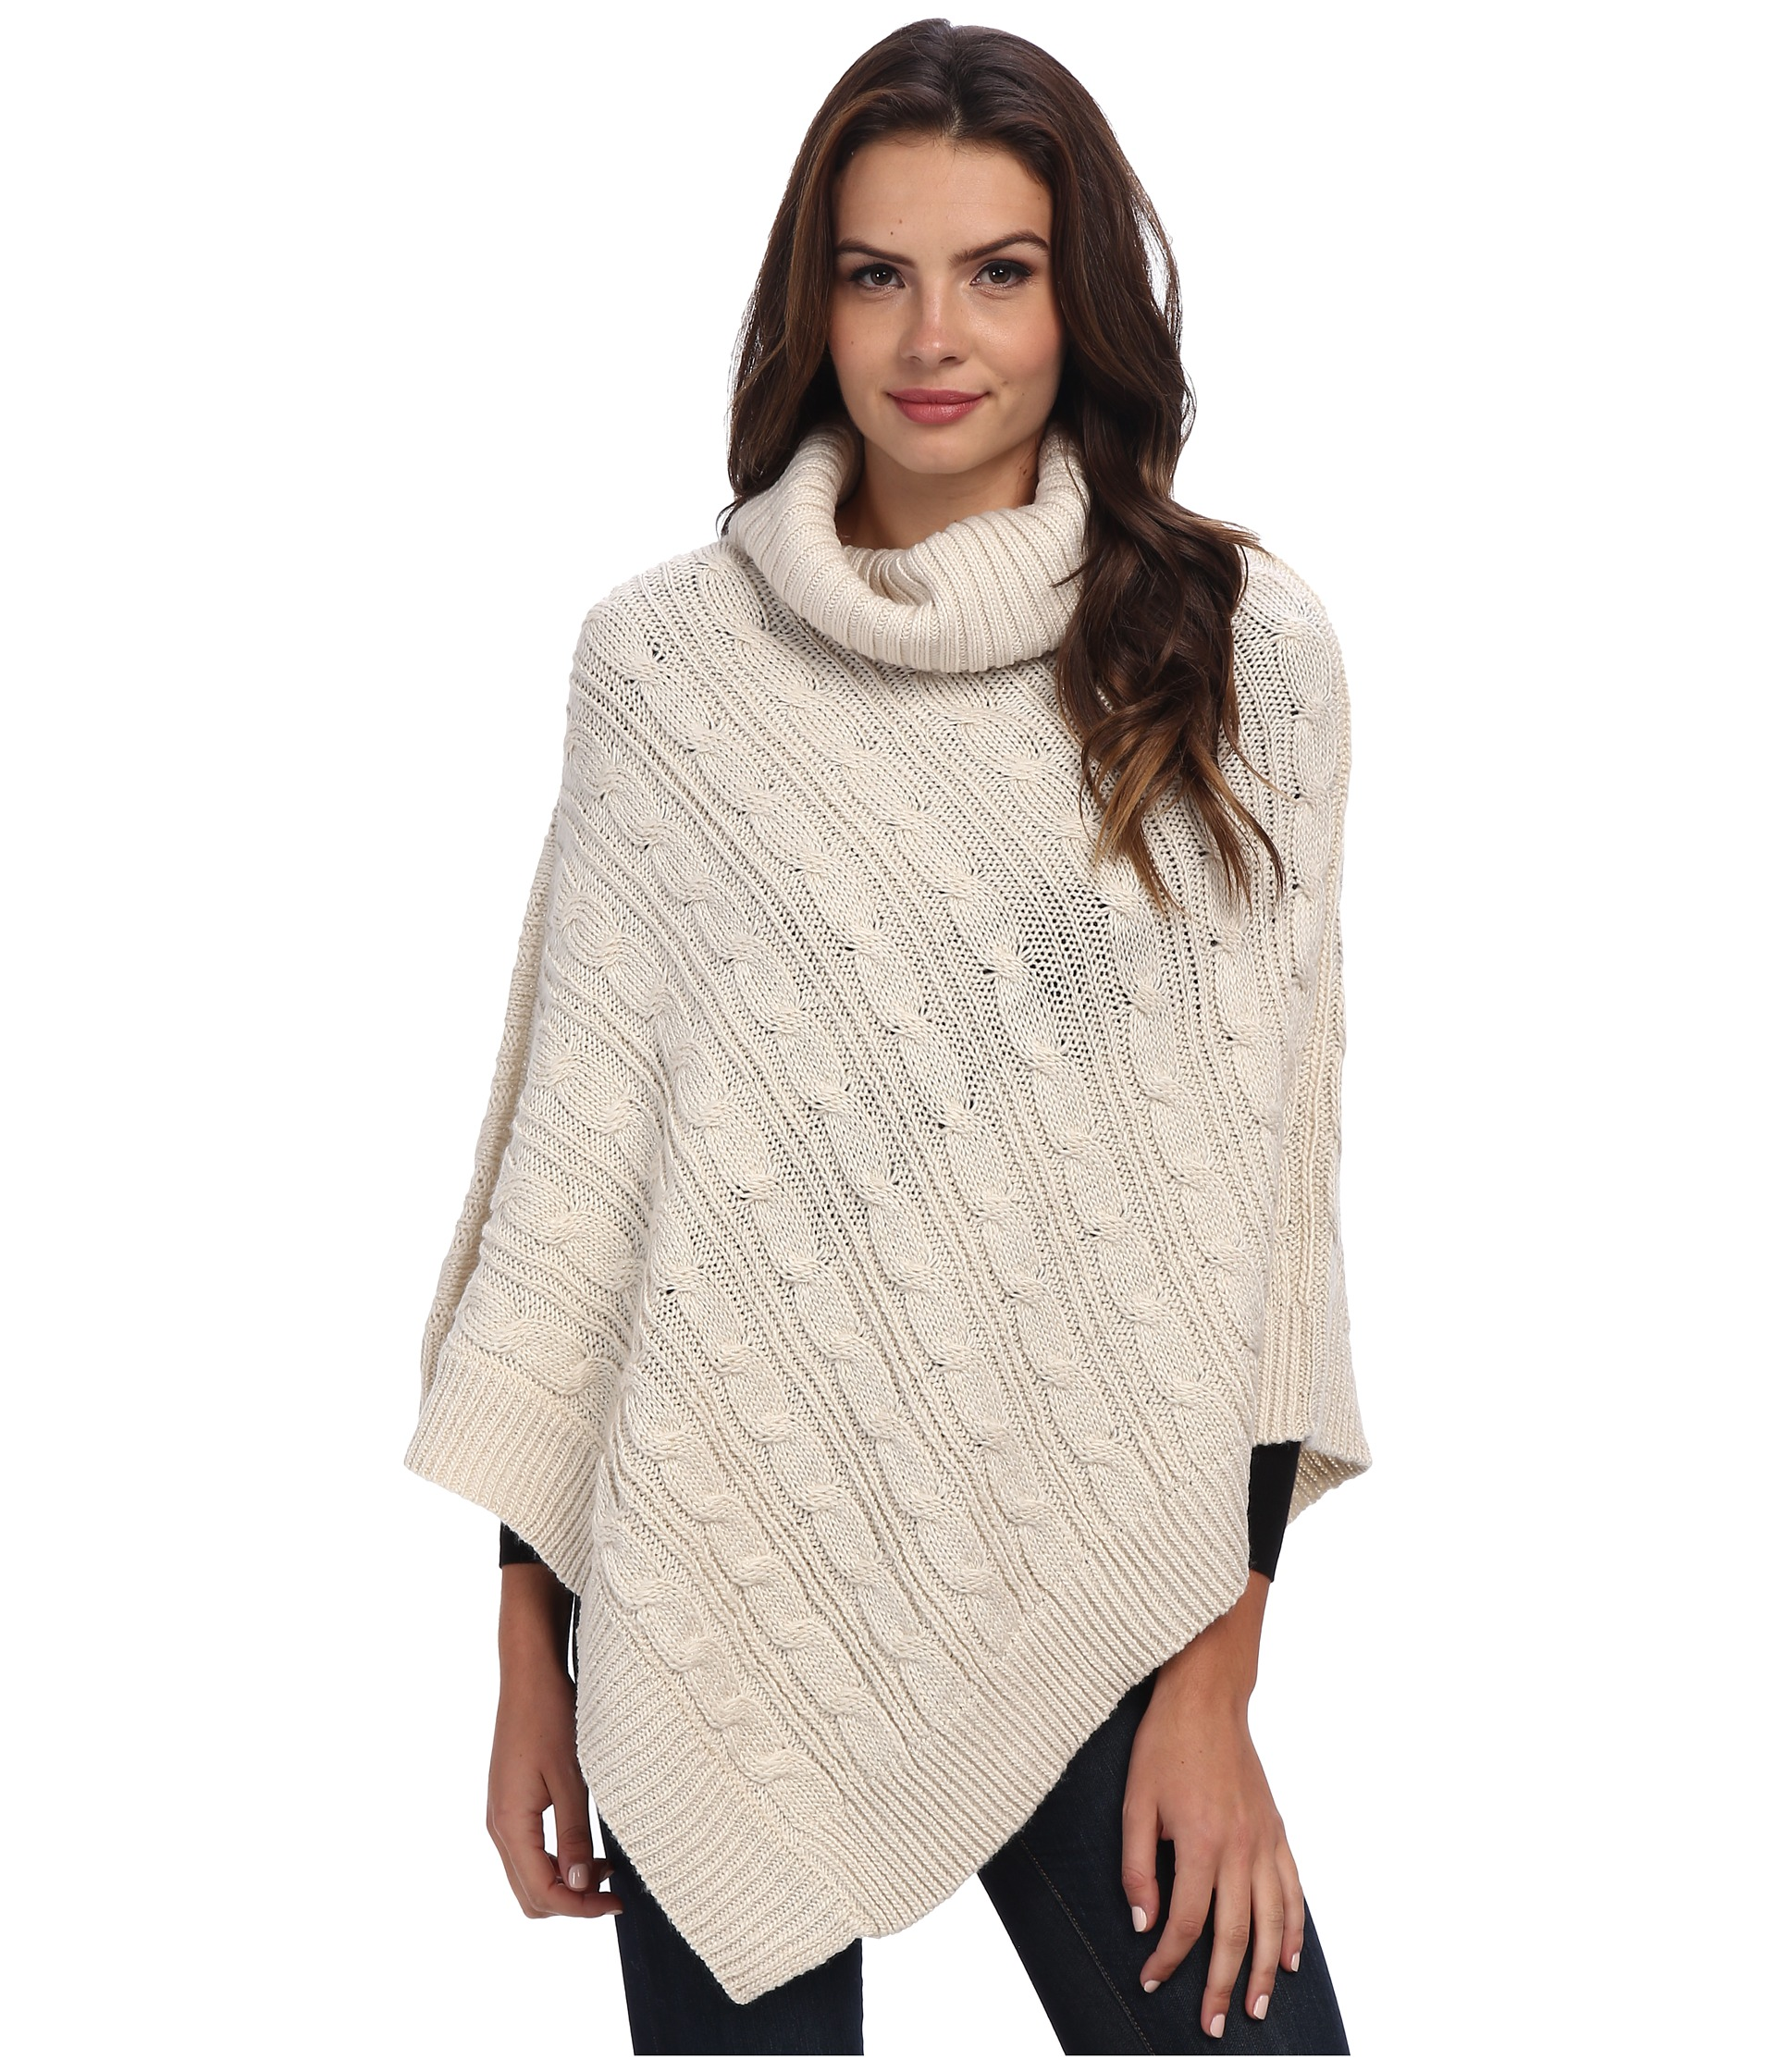 Knitting Pattern For Poncho With Cowl Neck : Steve Madden Lurex Cable Knit Cowl-Neck Poncho Cream - Zappos.com Free Shippi...